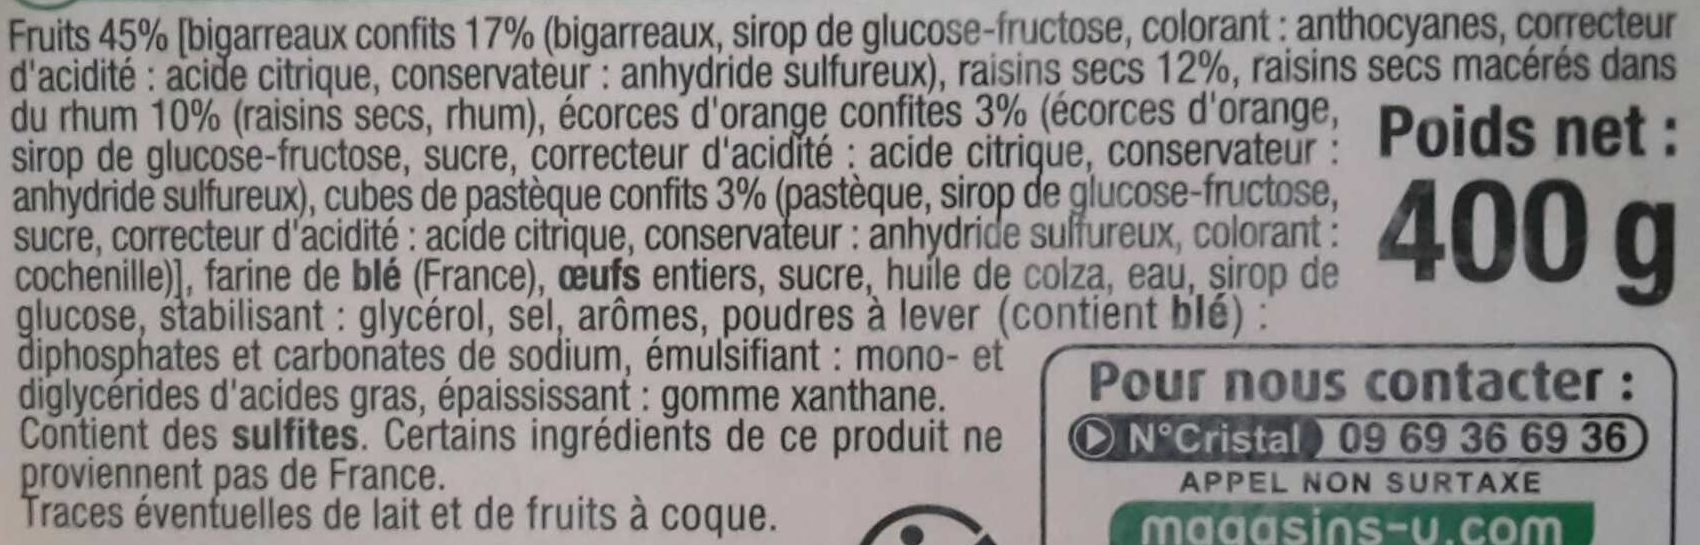 Cake anglais - Ingredients - fr